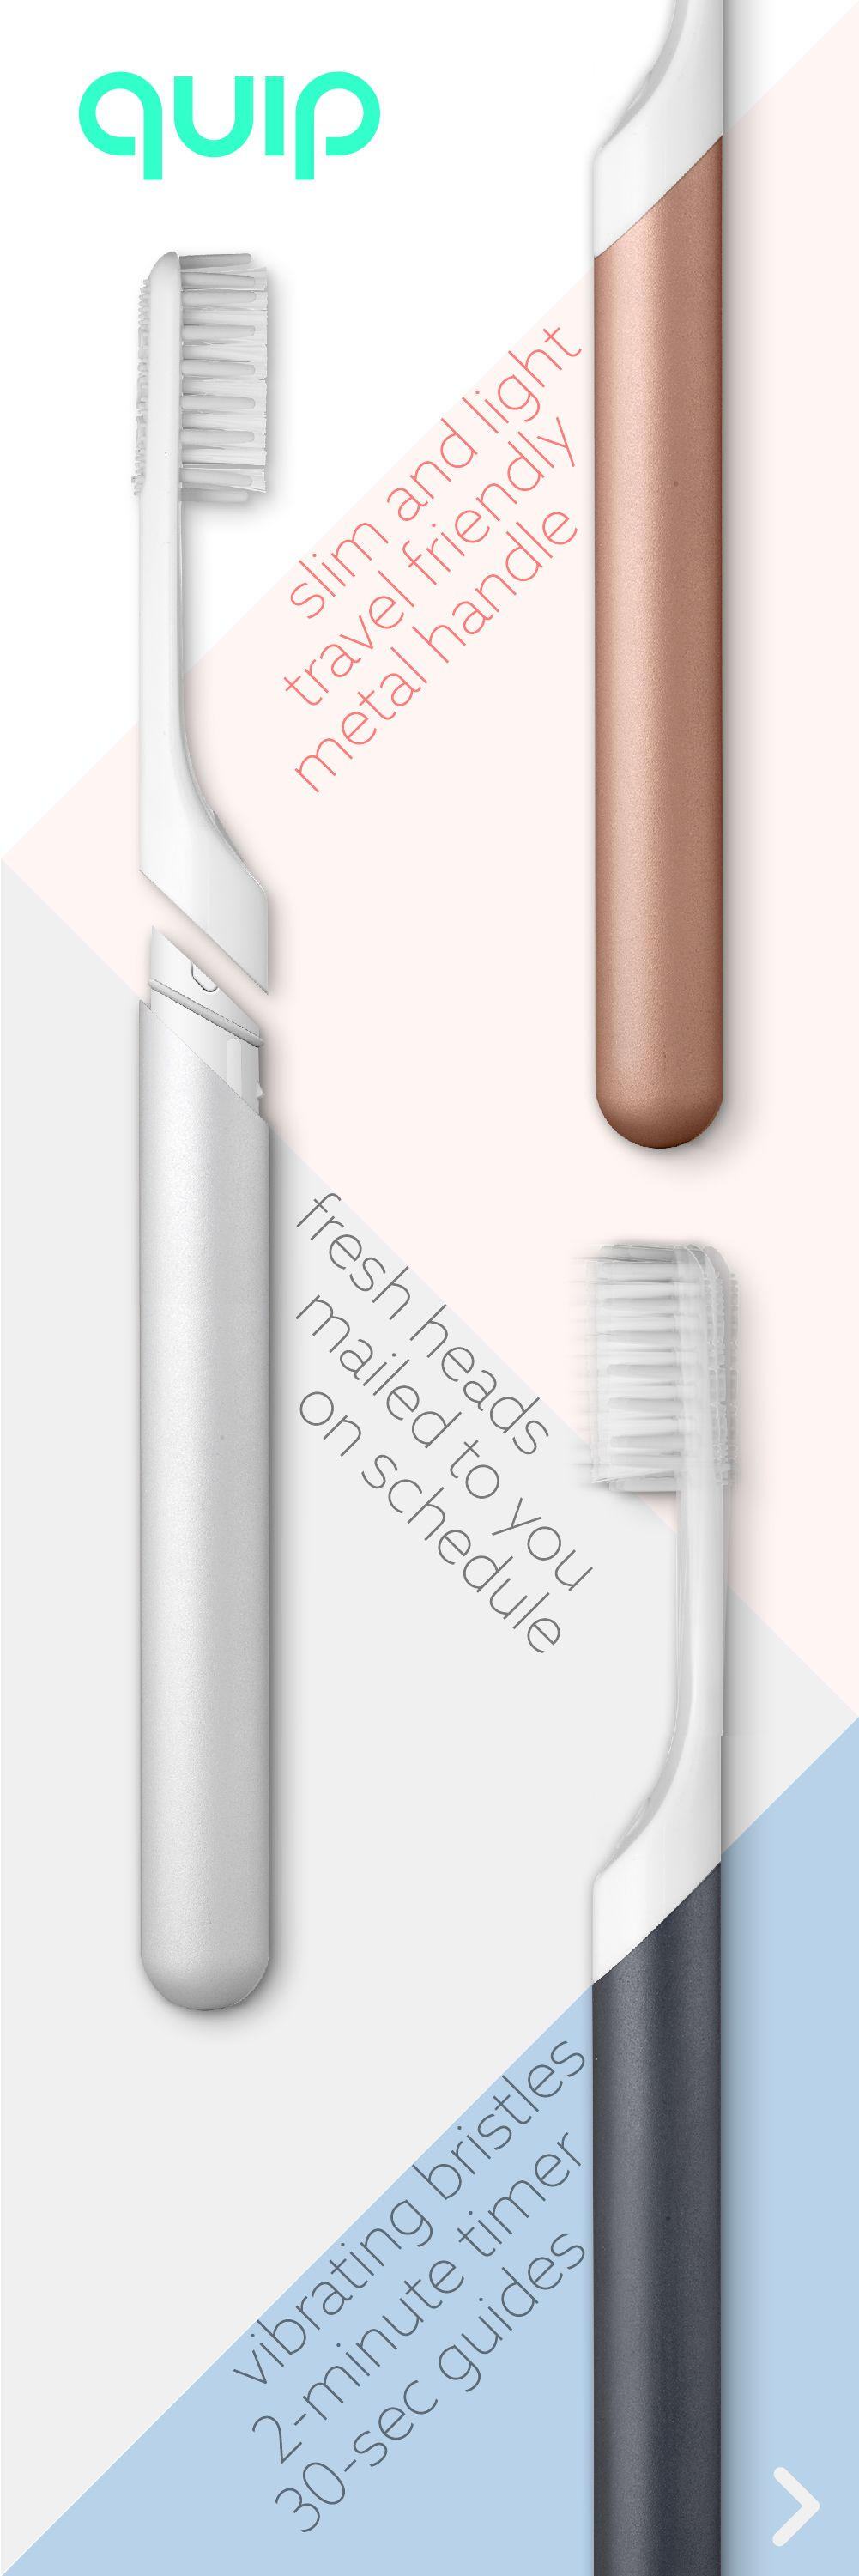 The Slimmest Electric Toothbrush! Refresh Your Routine ...